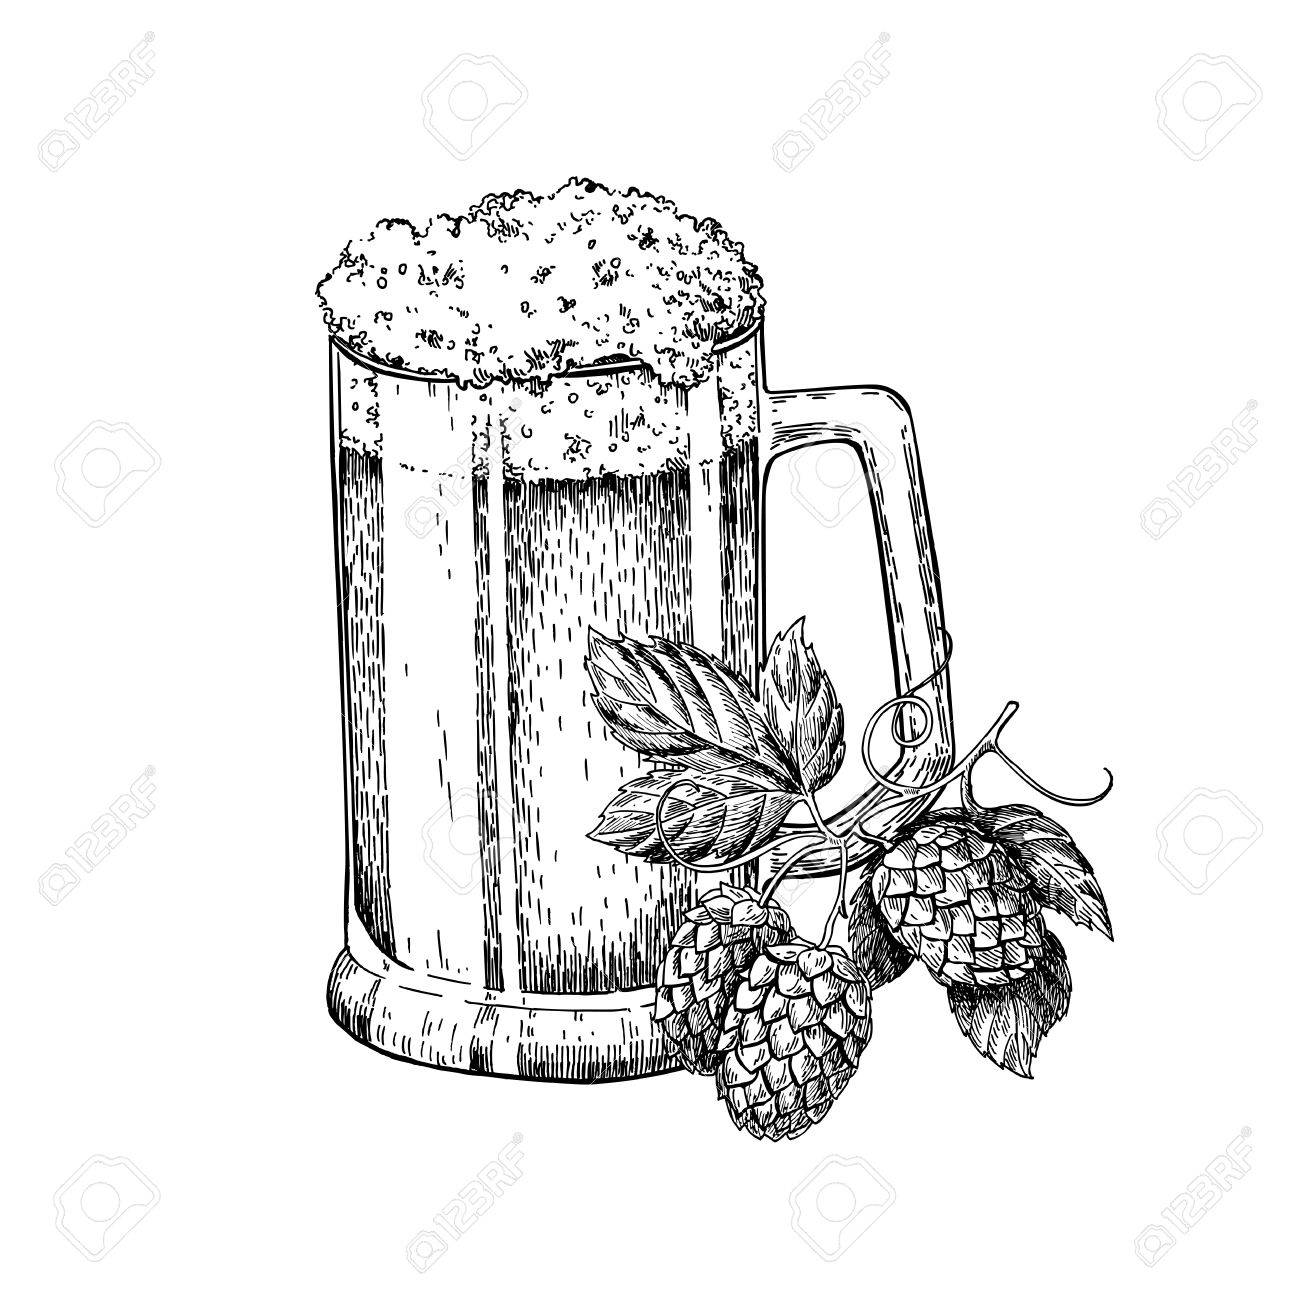 1300x1300 Beer Glass Mug With Hop. Sketch Style Vector Illustration. Hand